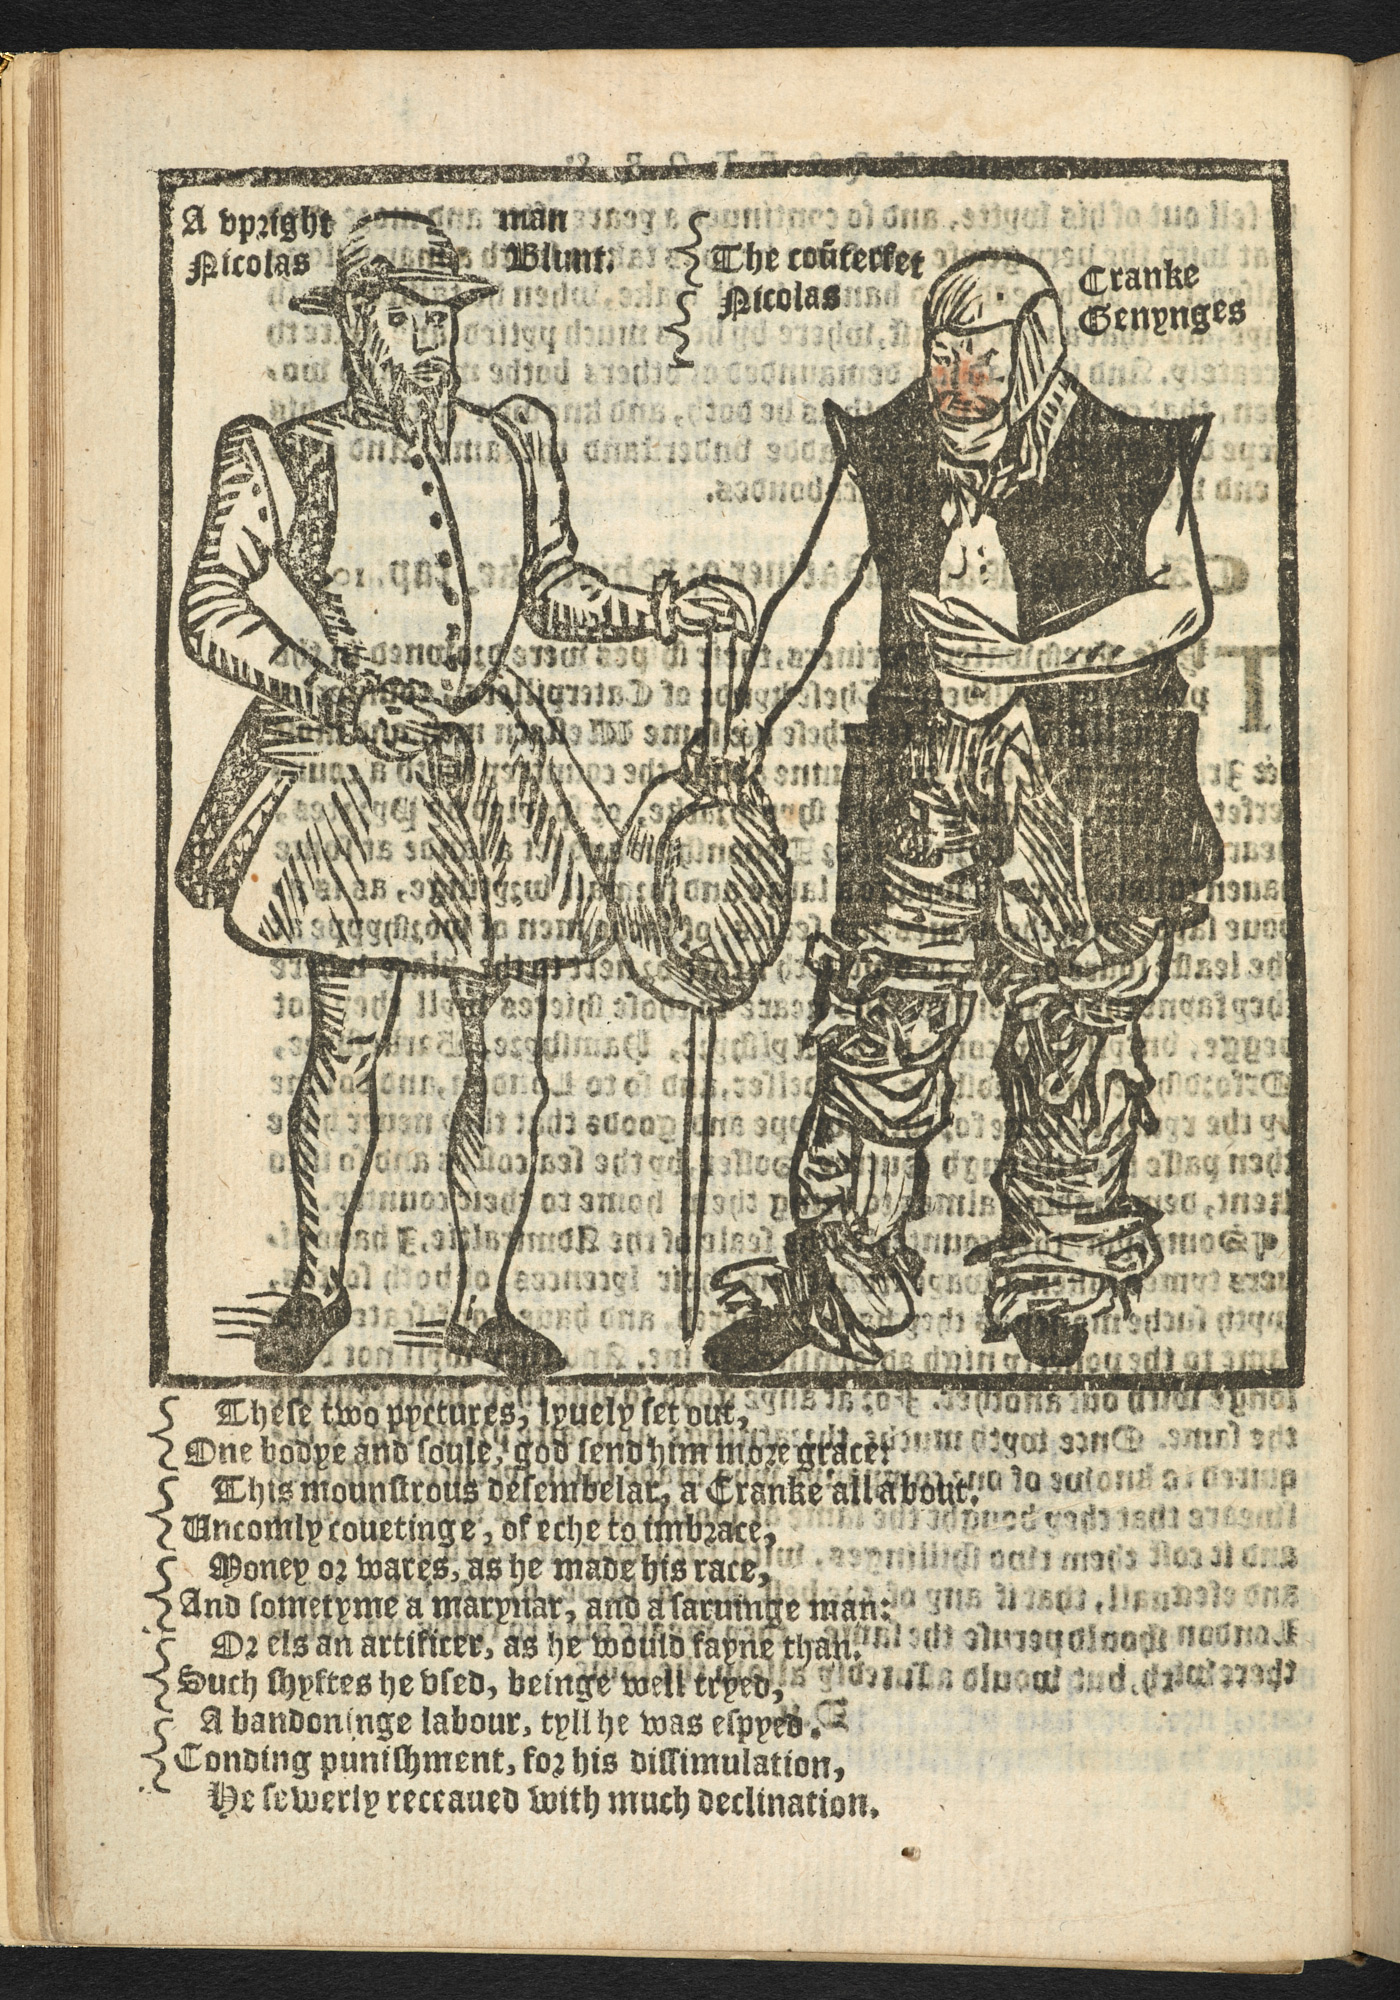 A Caveat for Common Cursetors, 1567